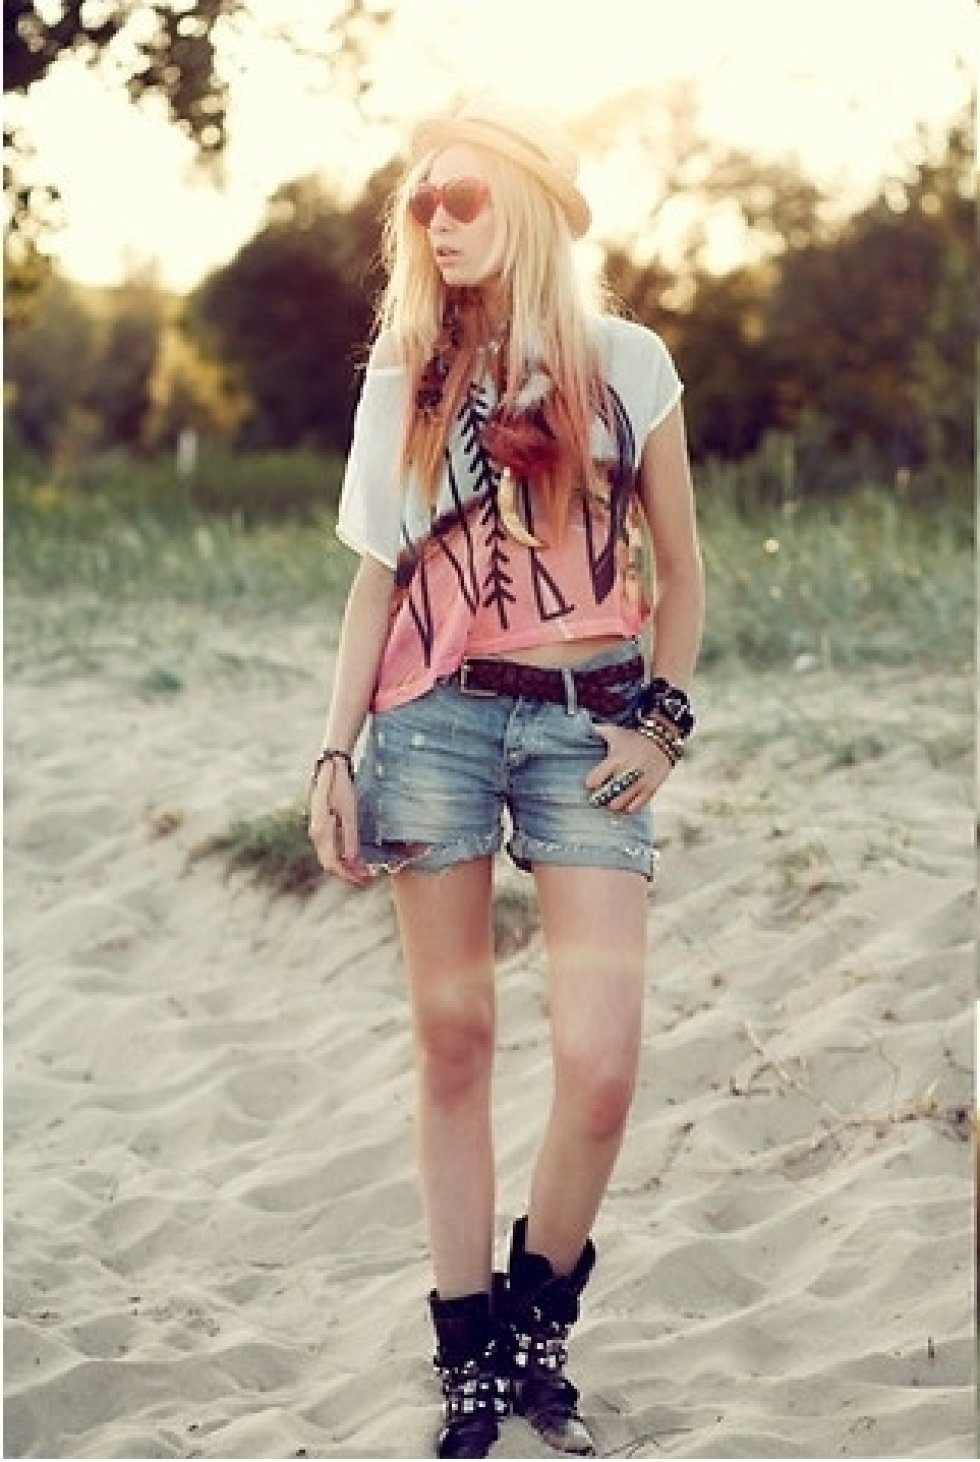 http://lookbook.nu/look/3543025-young-wild-and-free - Sommertendens 2012: Lårkorte shorts